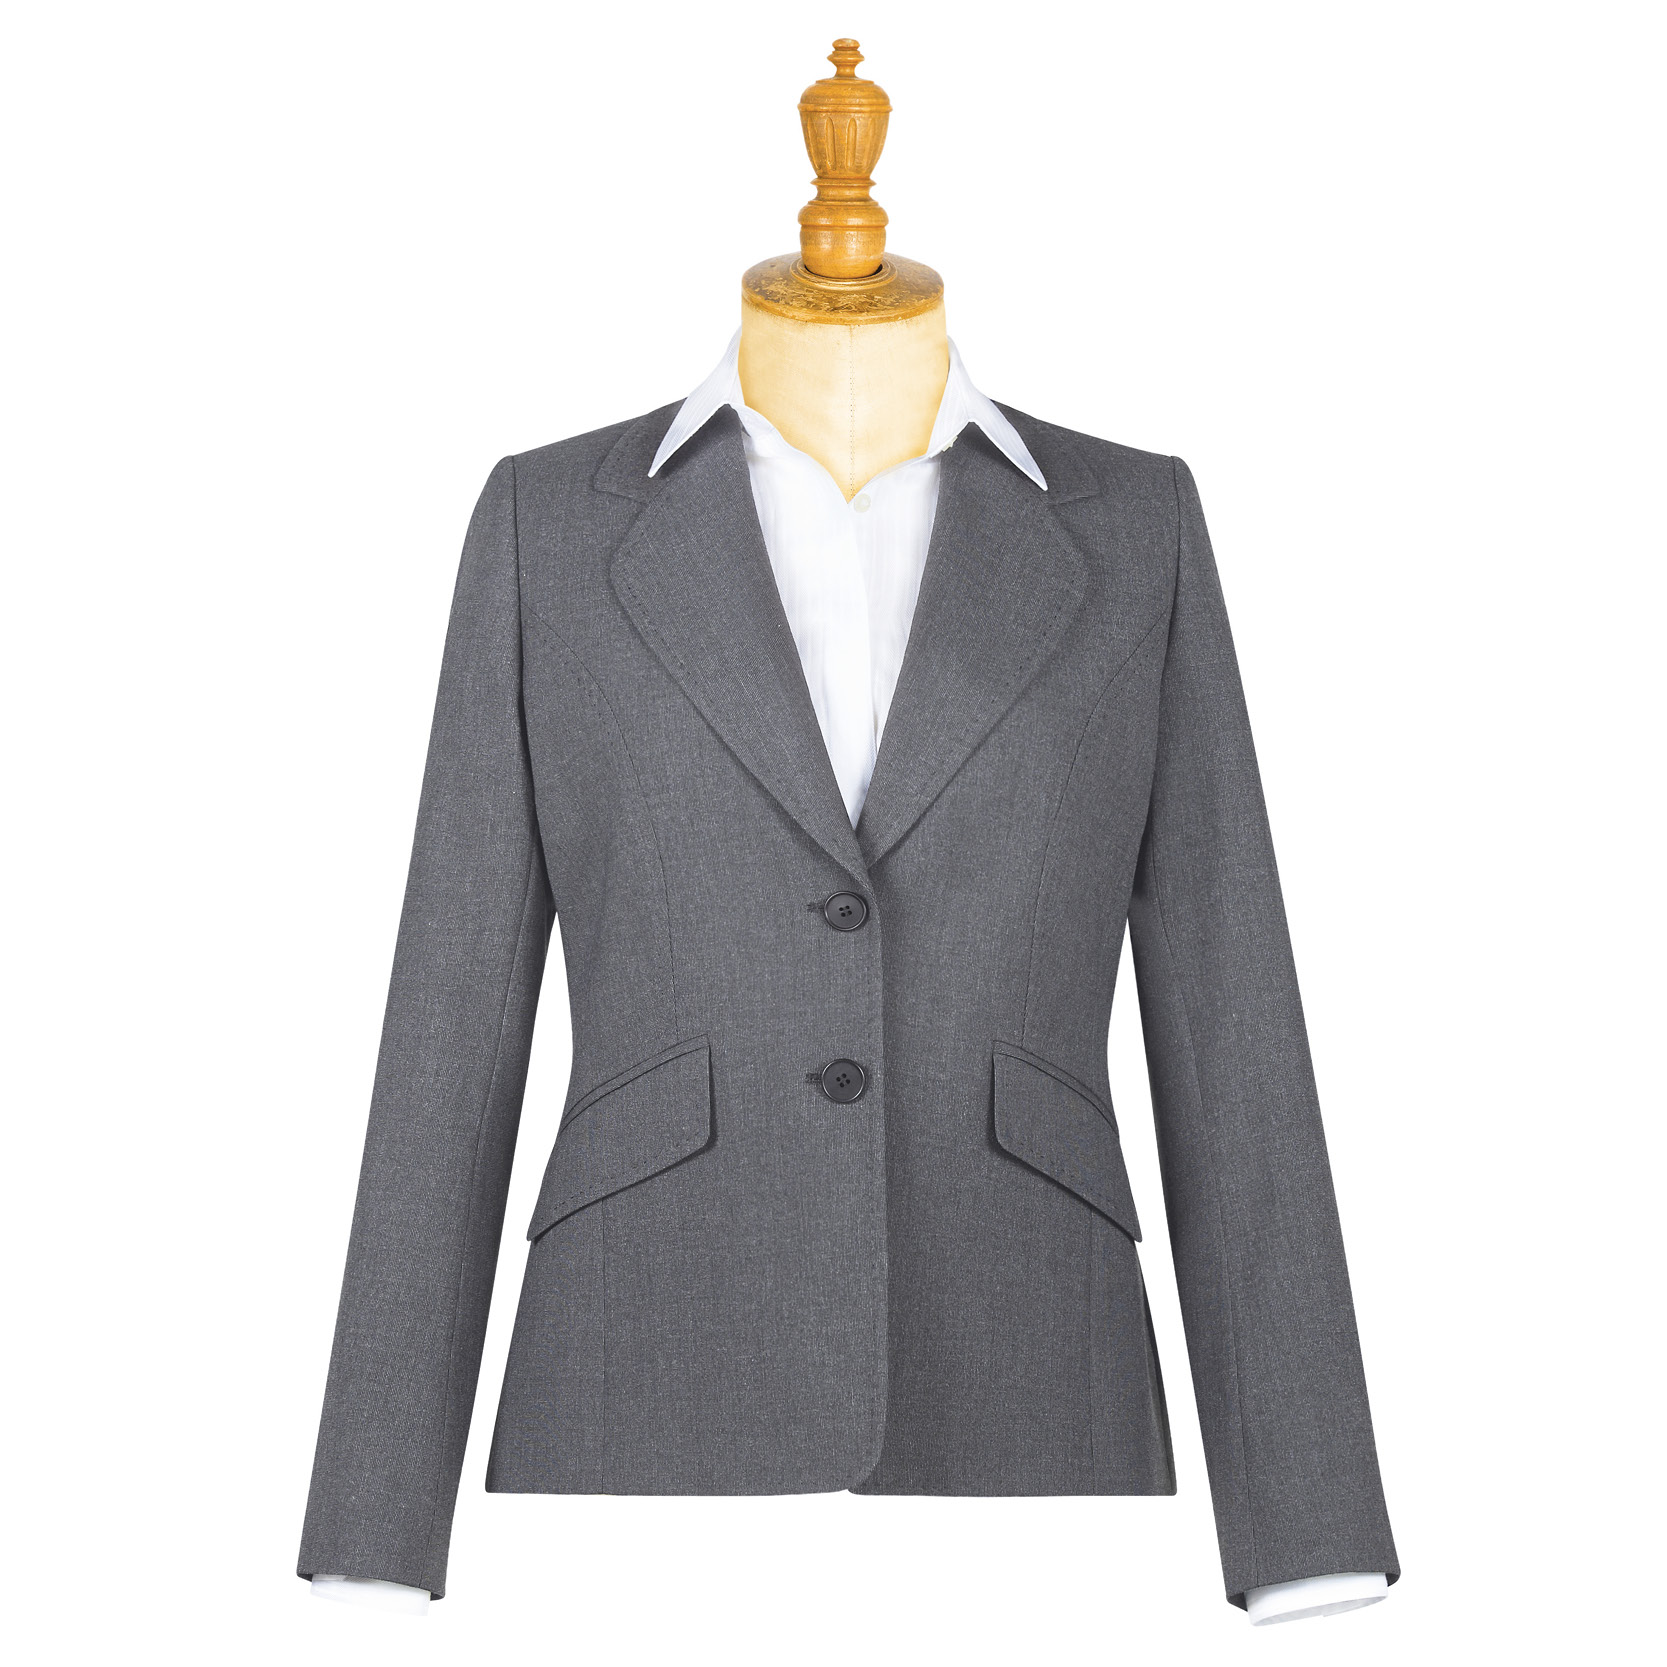 BK Sixth Form Ladies Suit Jacket